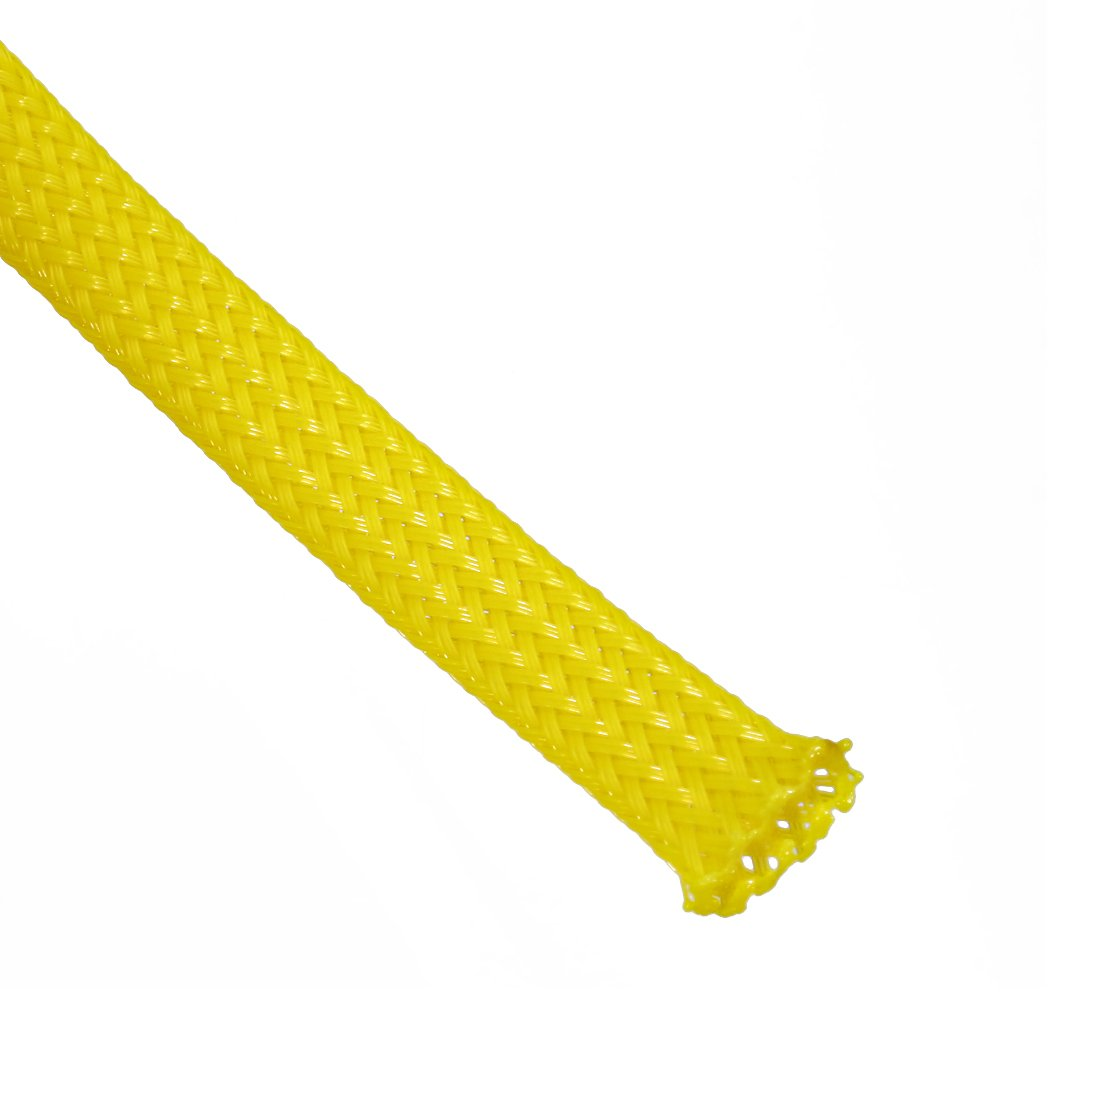 sourcing map 16.4ft 5m PET Expandable Sleeving 6mm Cable Management Sleeve Cord Organizer for Wrap Protect Cables Yellow